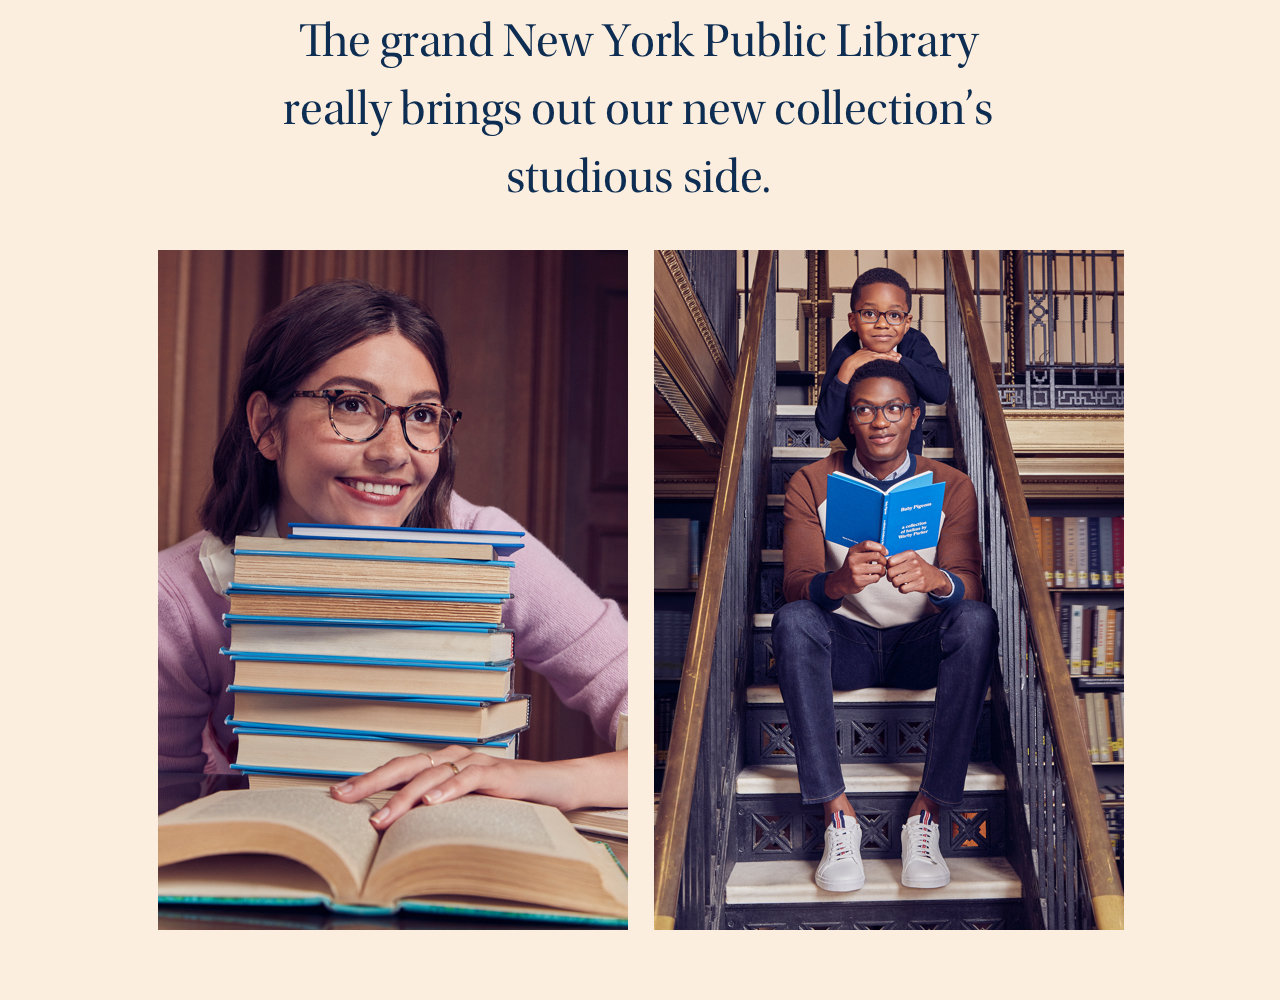 The grand New York Public Library really brings out our new collection's studious side.